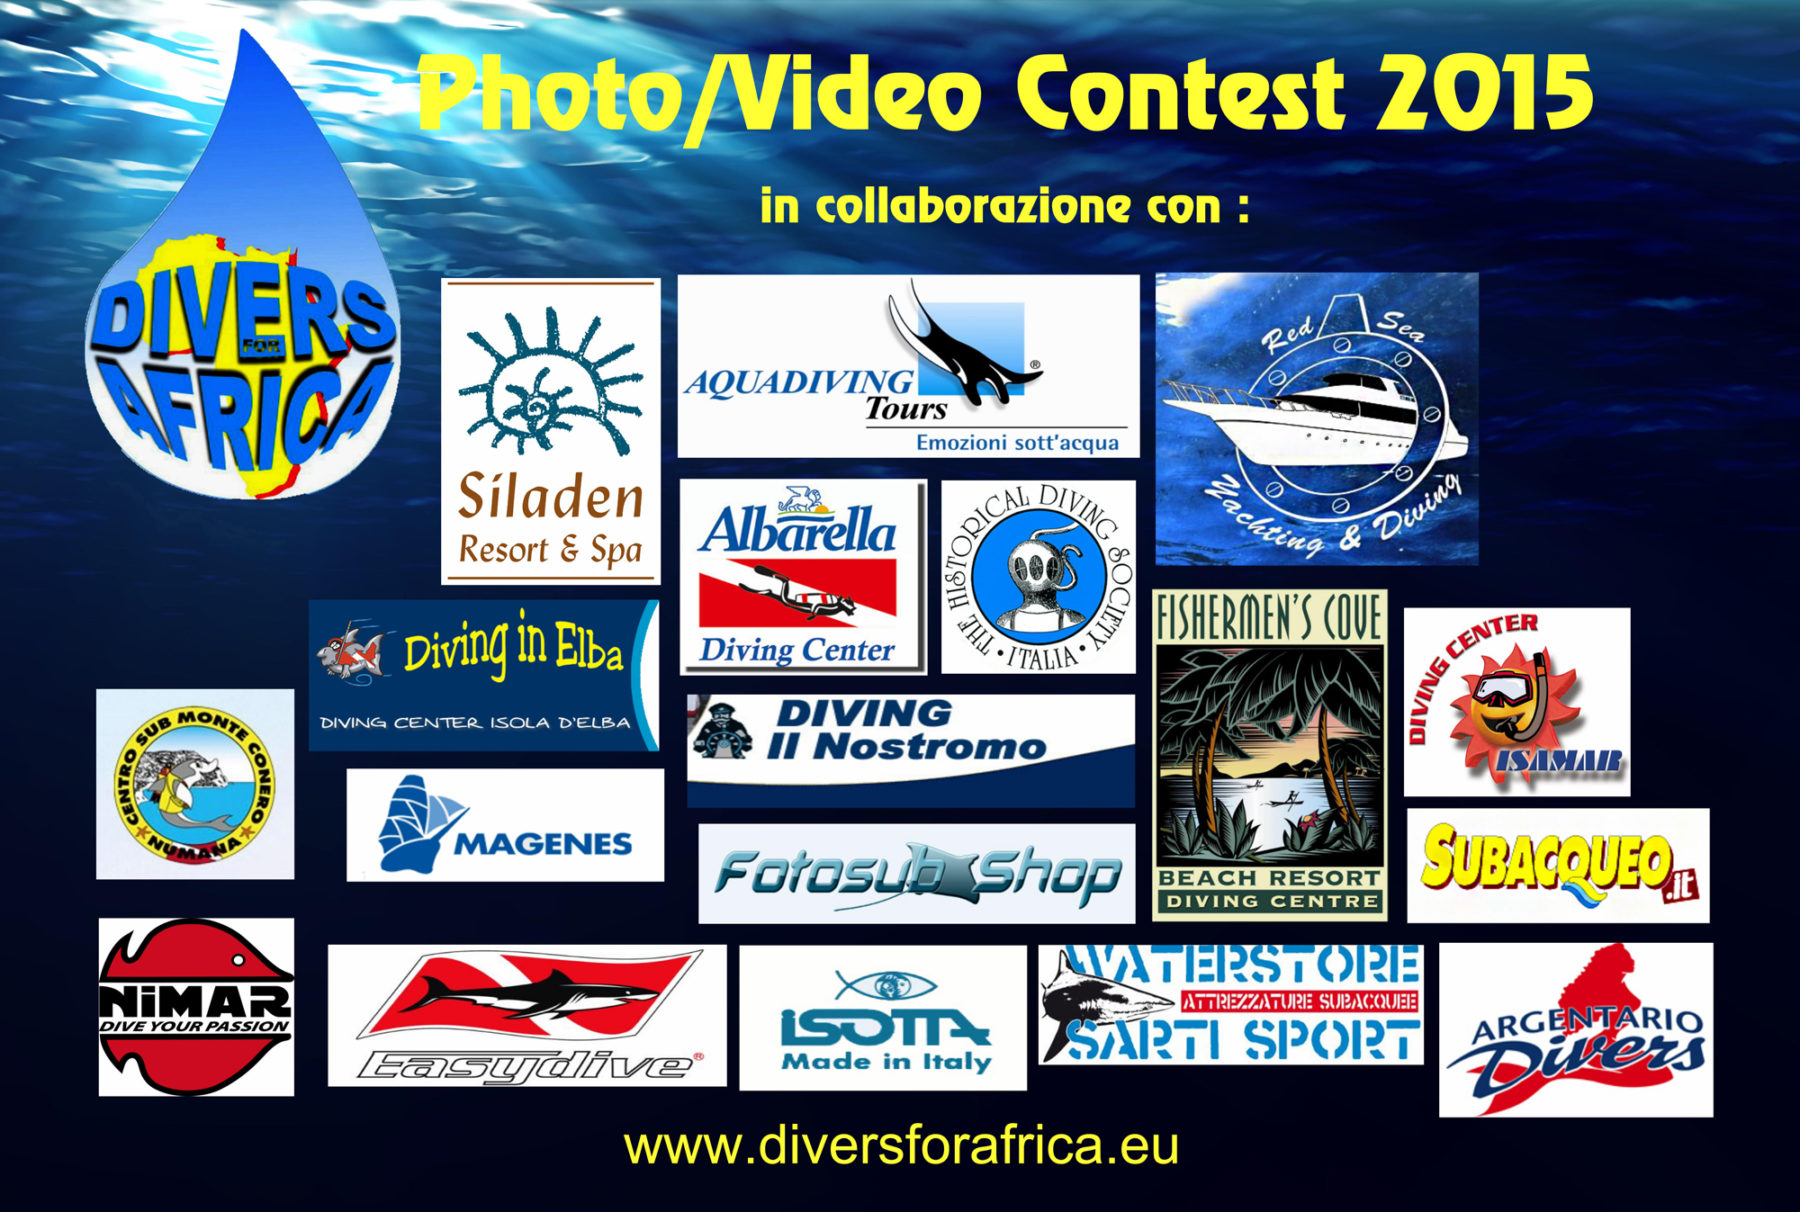 in_20collaborazione_20con_R DIVERS FOR AFRICA photo/video contest